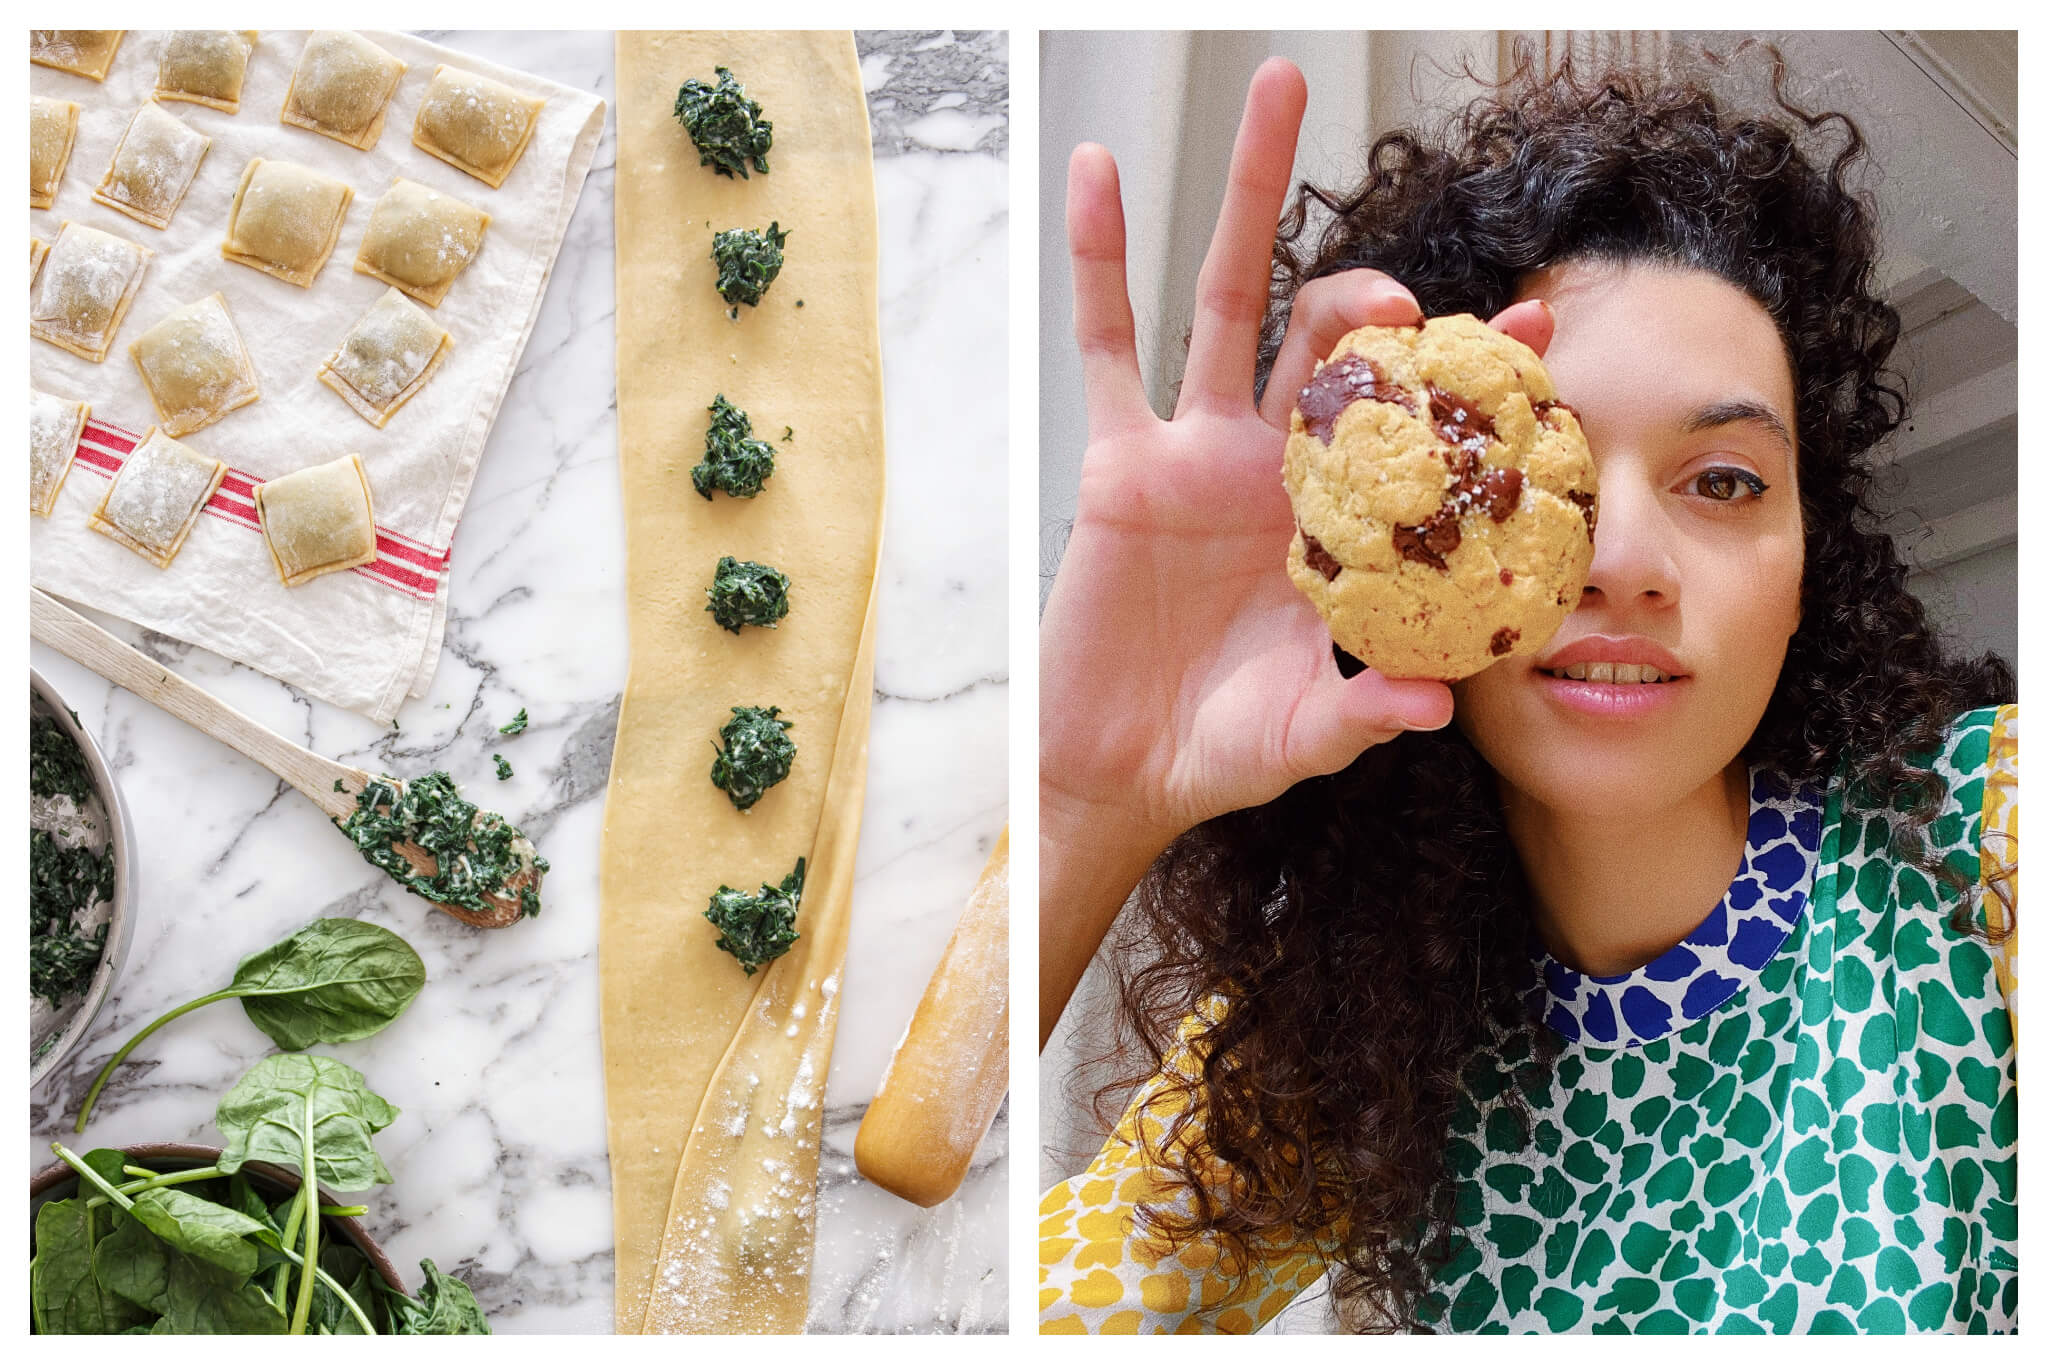 Left: the making of spinach ravioli. A sheet of pasta is on a marble background, with spoonfuls of spinach filling placed along it. To the left is a tea towel with some already made raviolis.  Right: a brunette curly-haired woman holding a chocolate chip biscuit in front of her eye. She's wearing a green, blue and yellow patterned top.